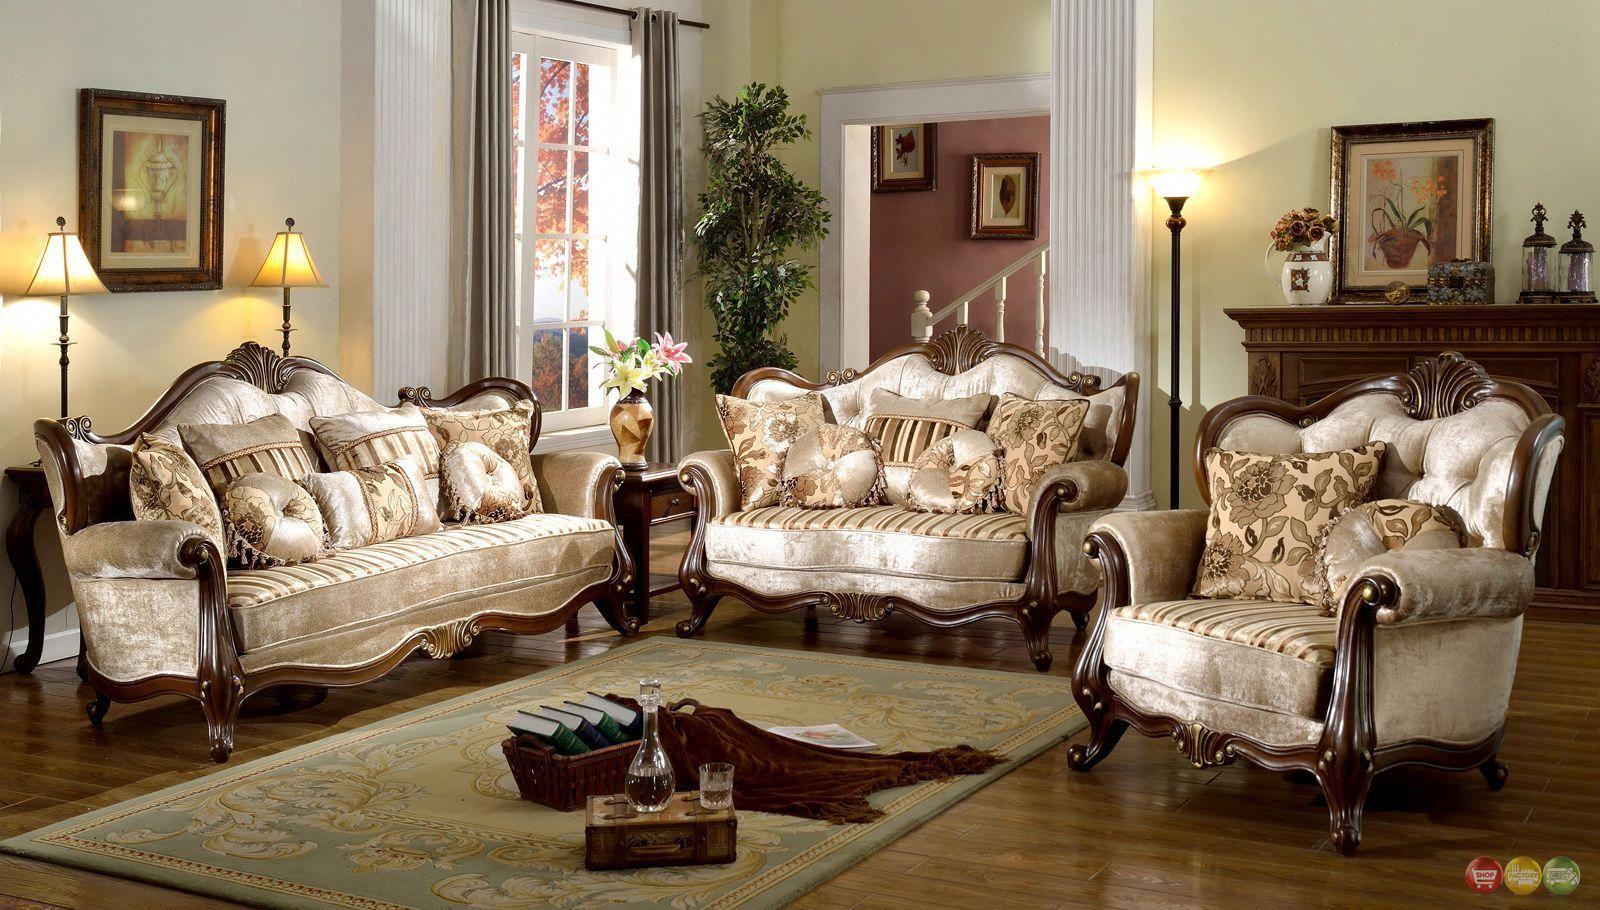 French Provincial Formal Antique Style 2pc Sofa Loveseat Set In Beige Chenille Ebay Living Room Sets Furniture Antique Living Rooms Living Room Sofa Set #vintage #style #living #room